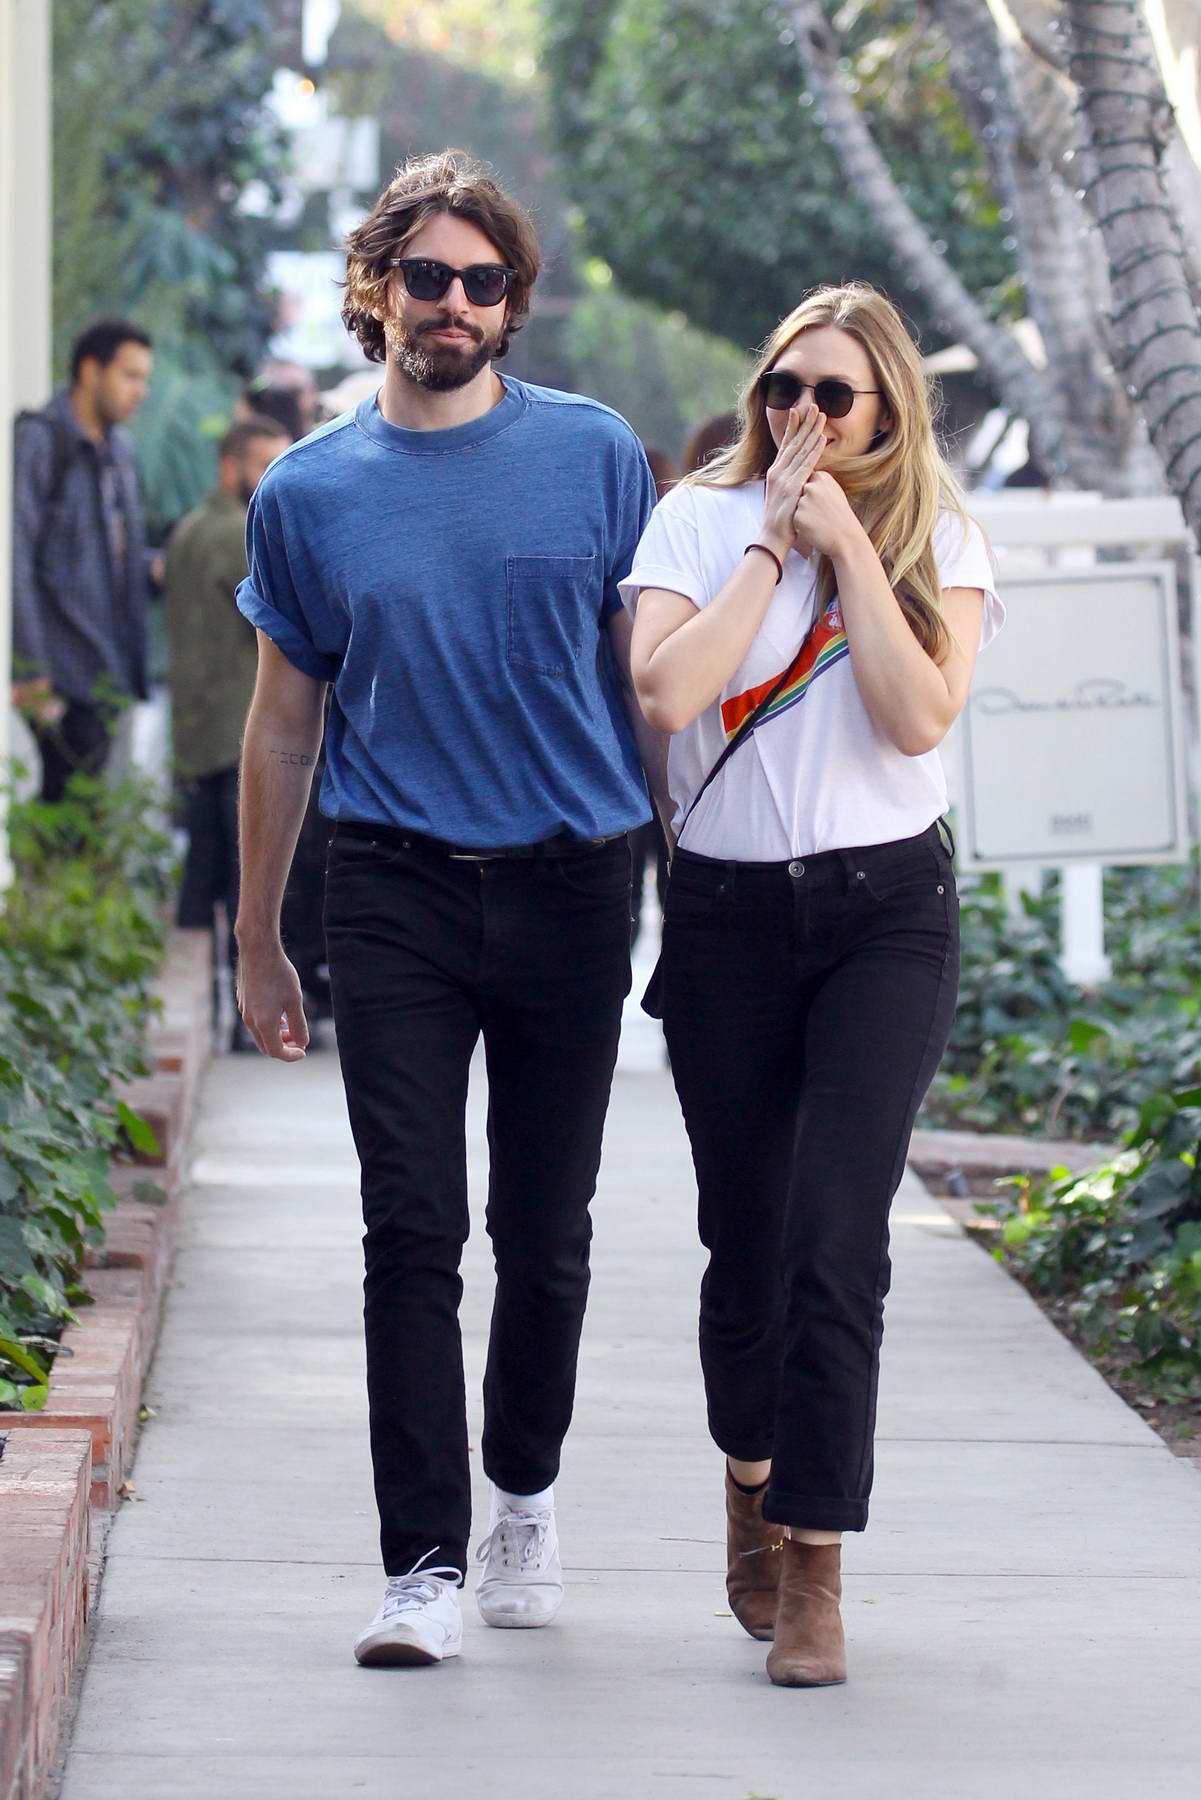 Elizabeth Olsen and boyfriend Robbie Arnett enjoy some ice cream while they shop at The Grove in Los Angeles